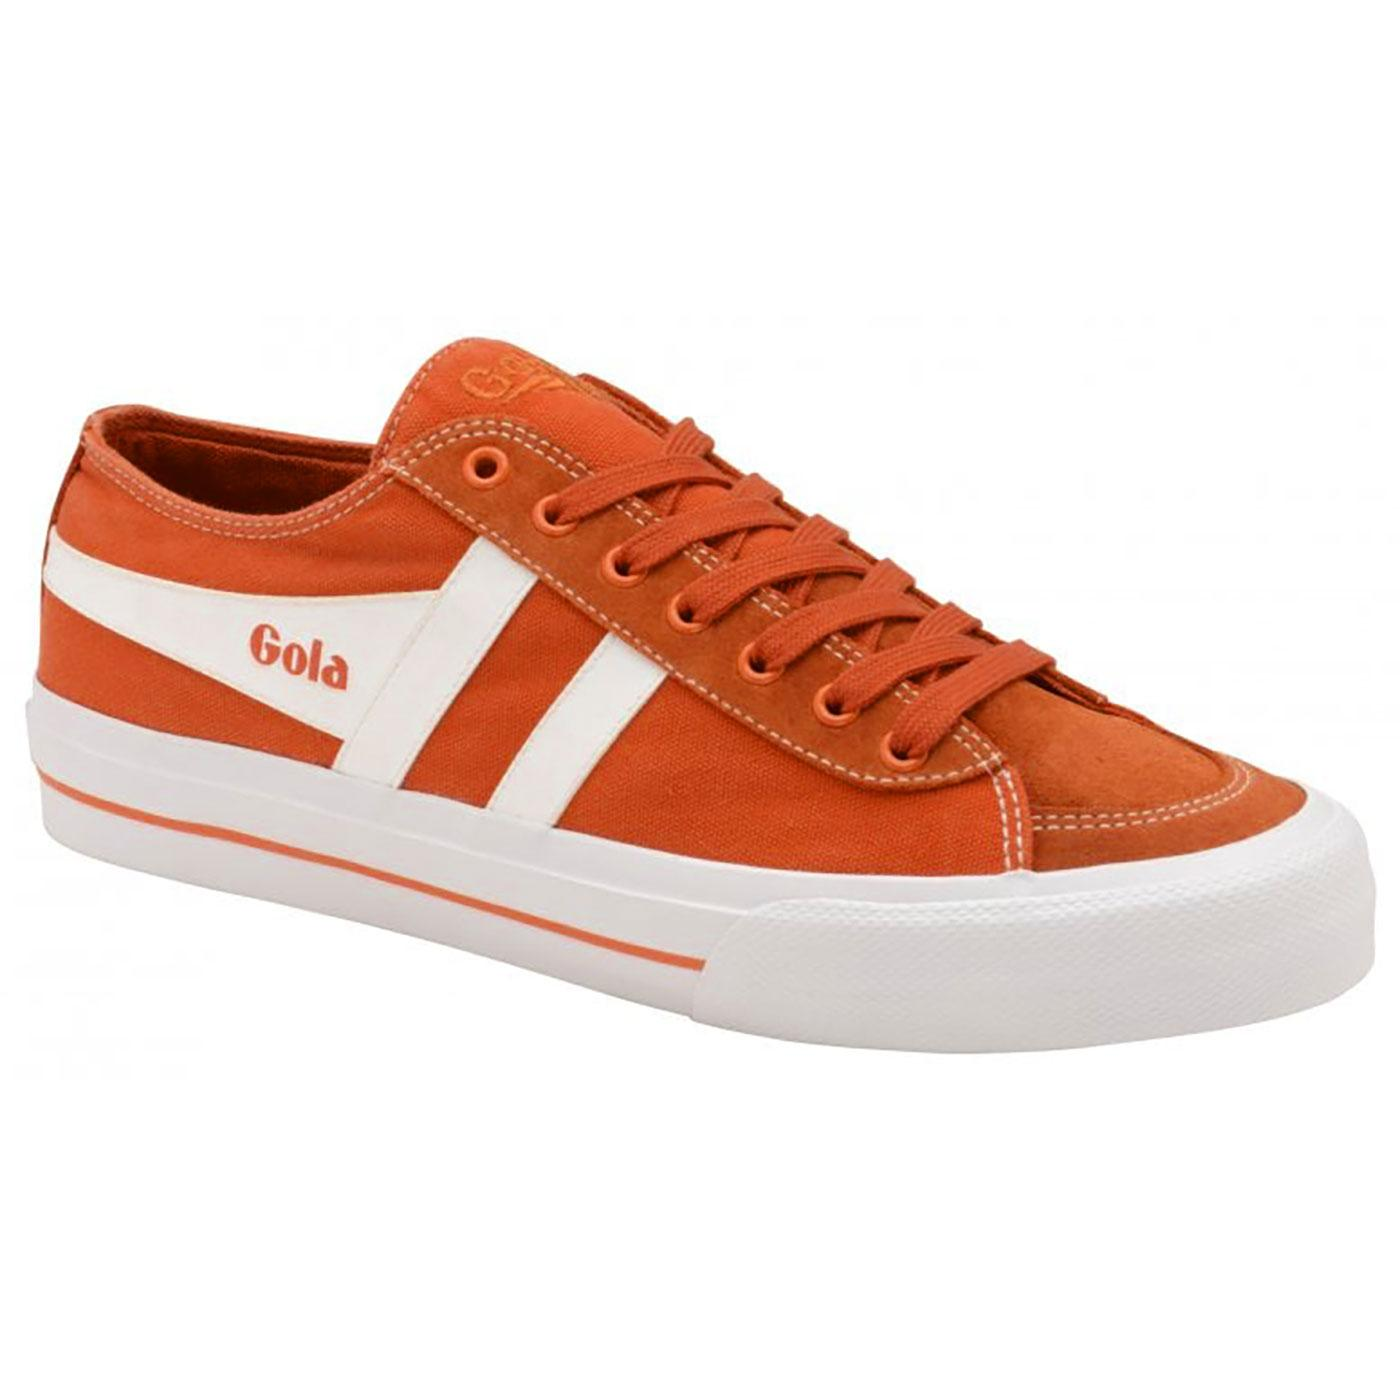 Quota II GOLA Men's Retro Washed Canvas Trainers O